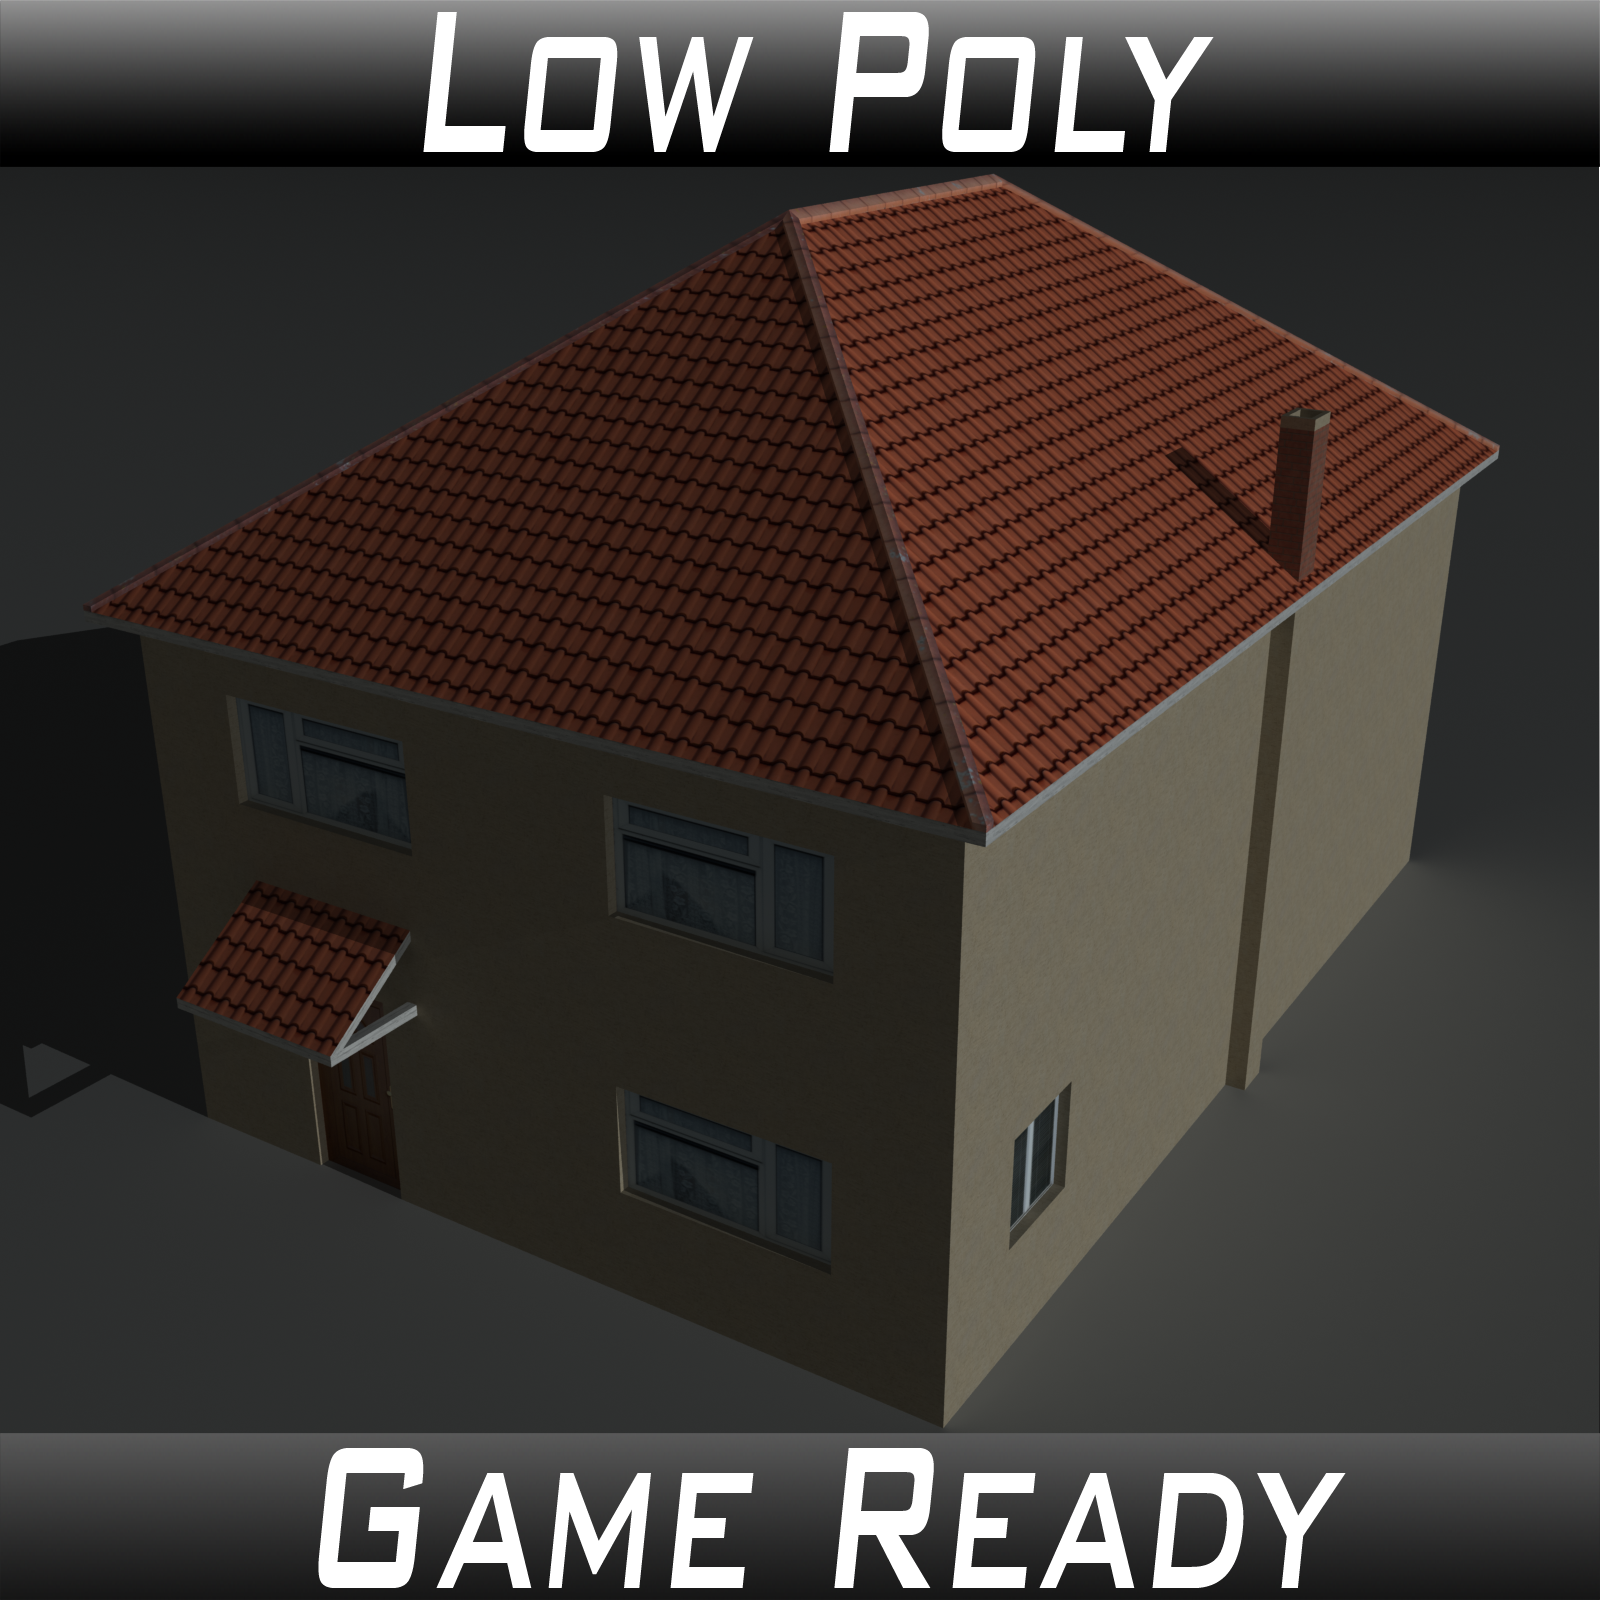 Low Poly House 12 - Extended License